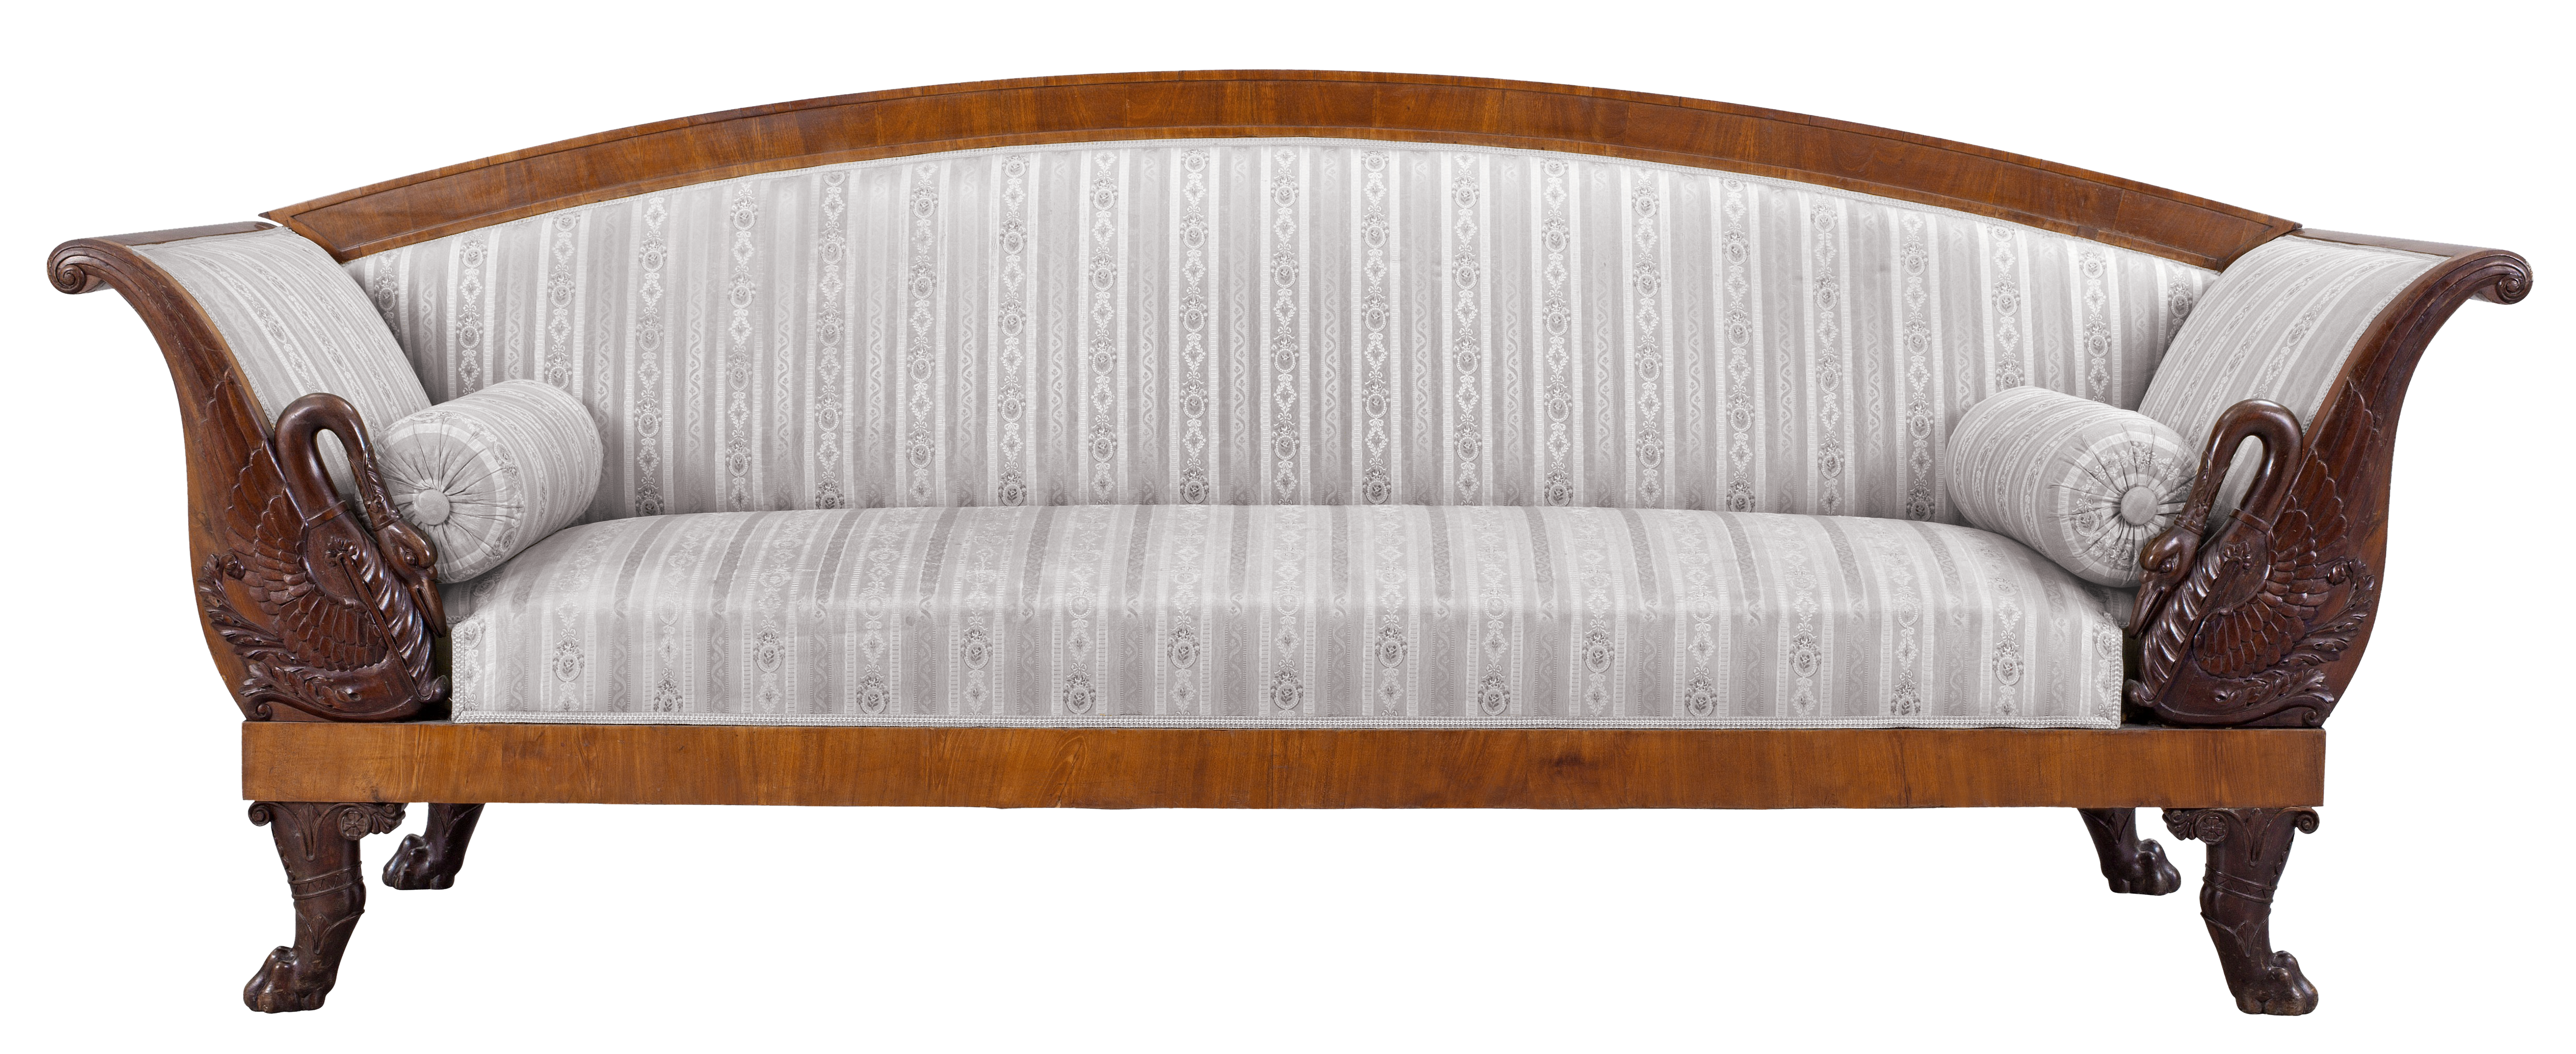 Vintage couch png. Transparent picture gallery yopriceville